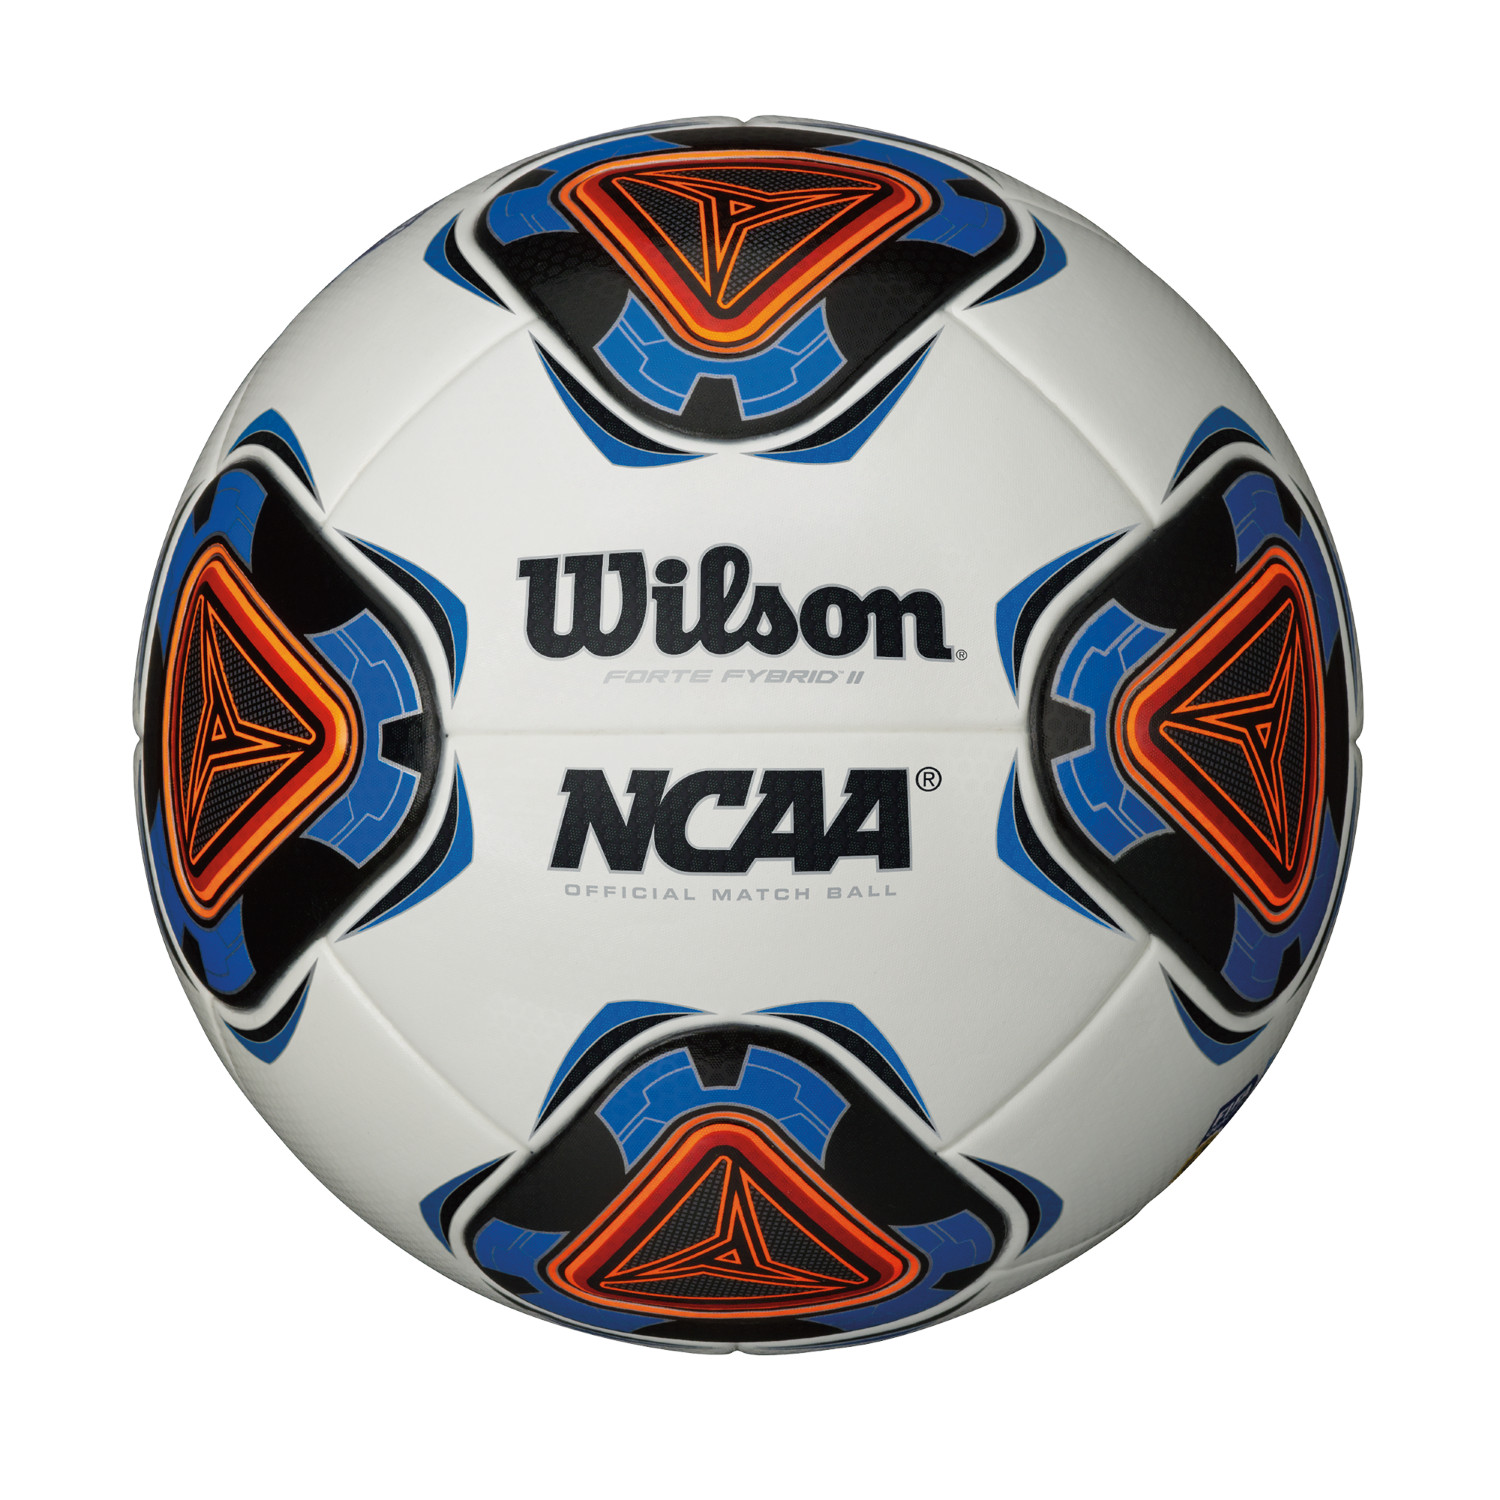 Wilson NCAA Forte FYbrid II Official Championship Match Ball